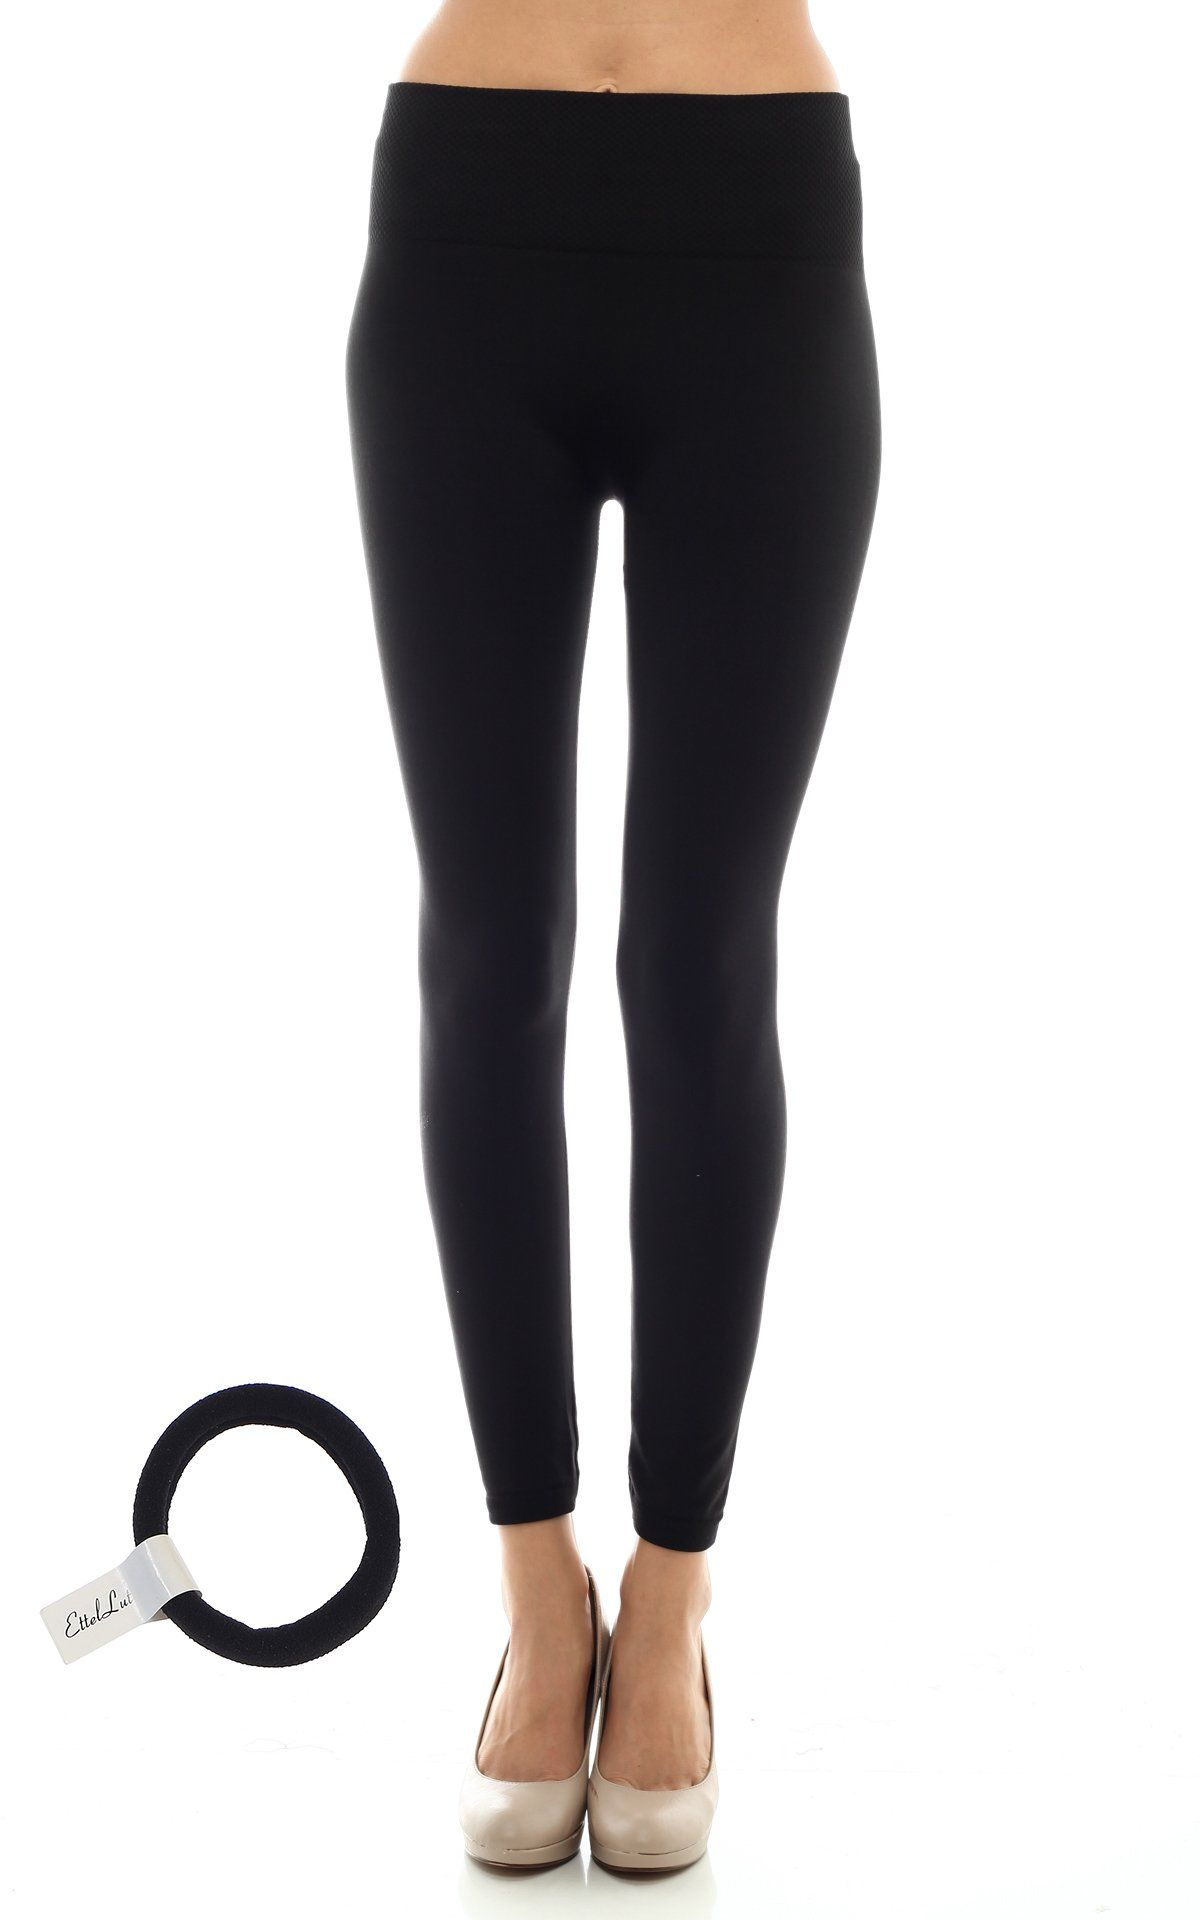 10889c34456b76 High Waist Fleece Lined Leggings with EttelLut Hair Band BLACK PS. One Size  fits all